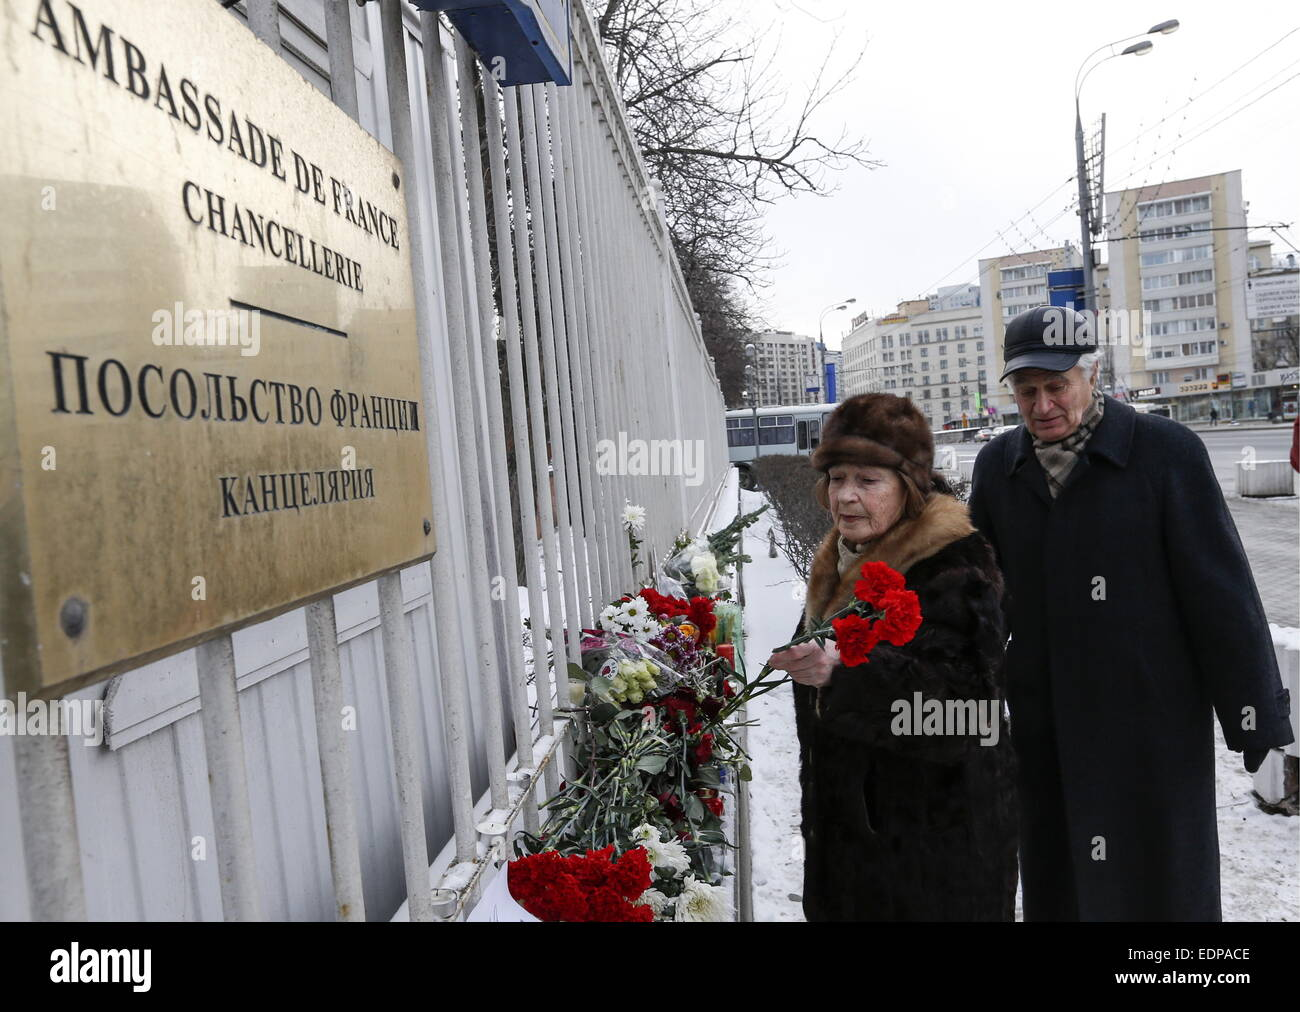 Moscow, Russia. 8th Jan, 2015. People leave flowers outside the embassy of France in Moscow for the victims of the Stock Photo